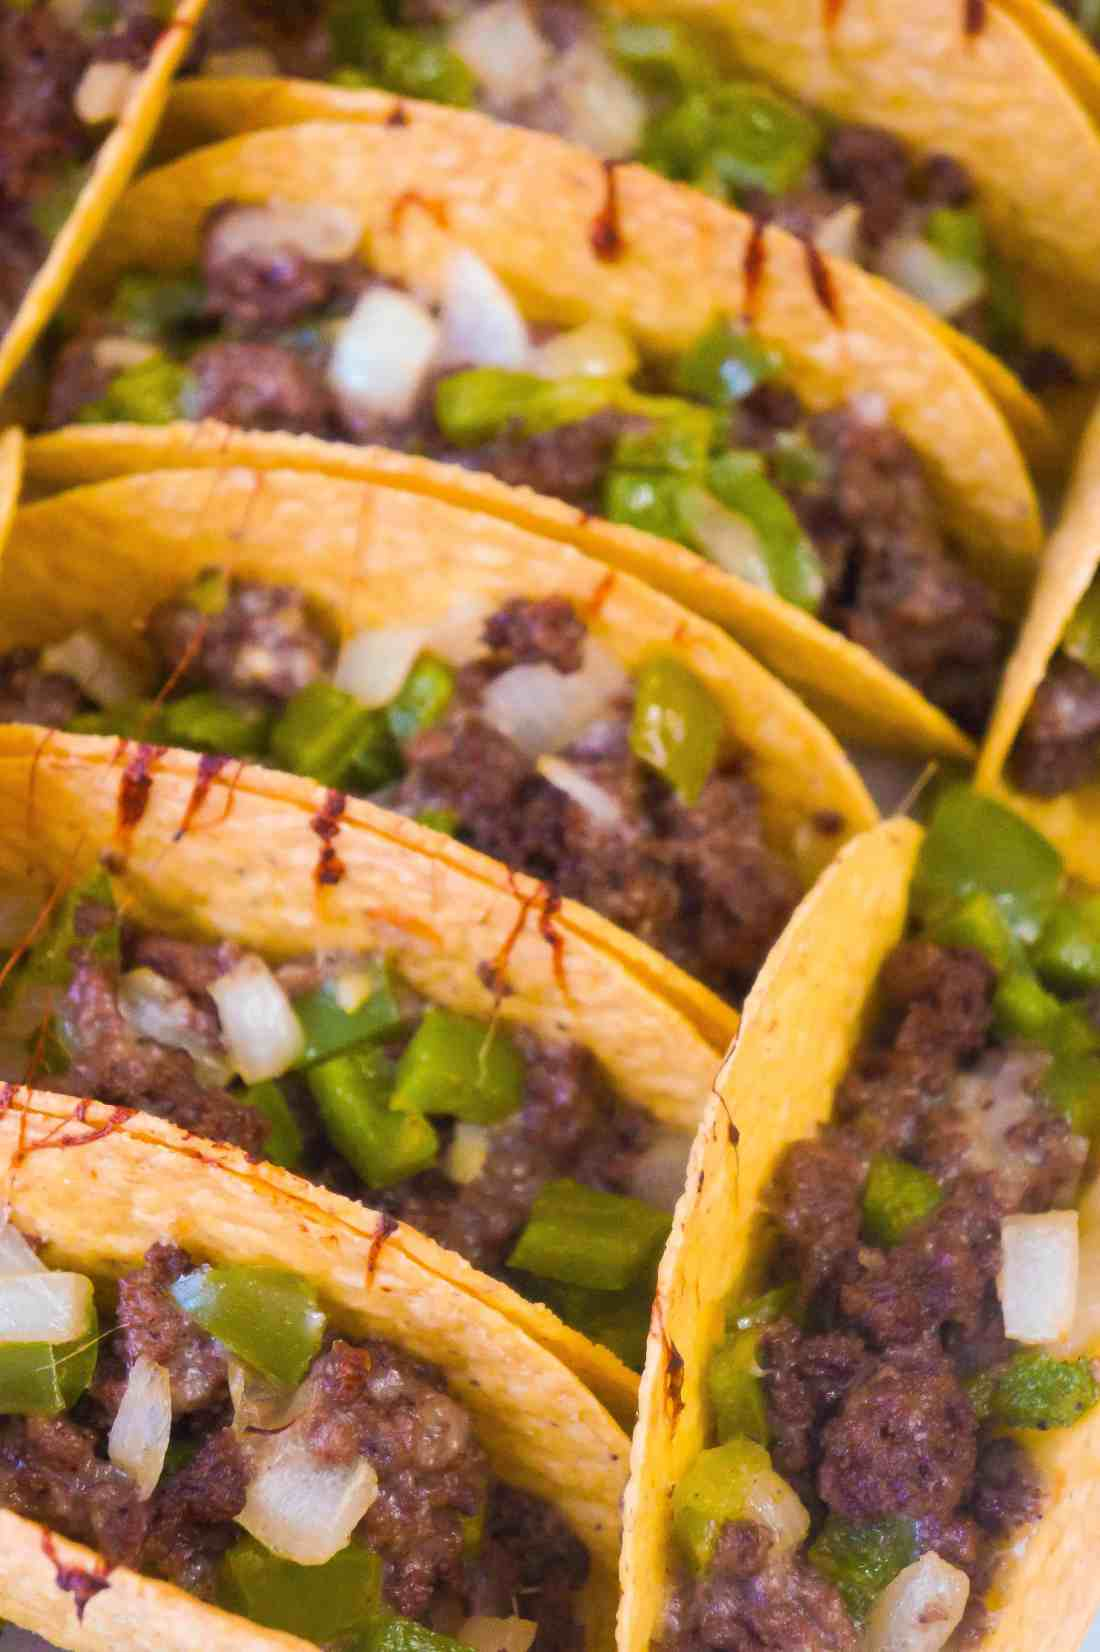 Philly Cheese Steak Ground Beef Tacos are loaded with onions, green peppers and mozzarella cheese.